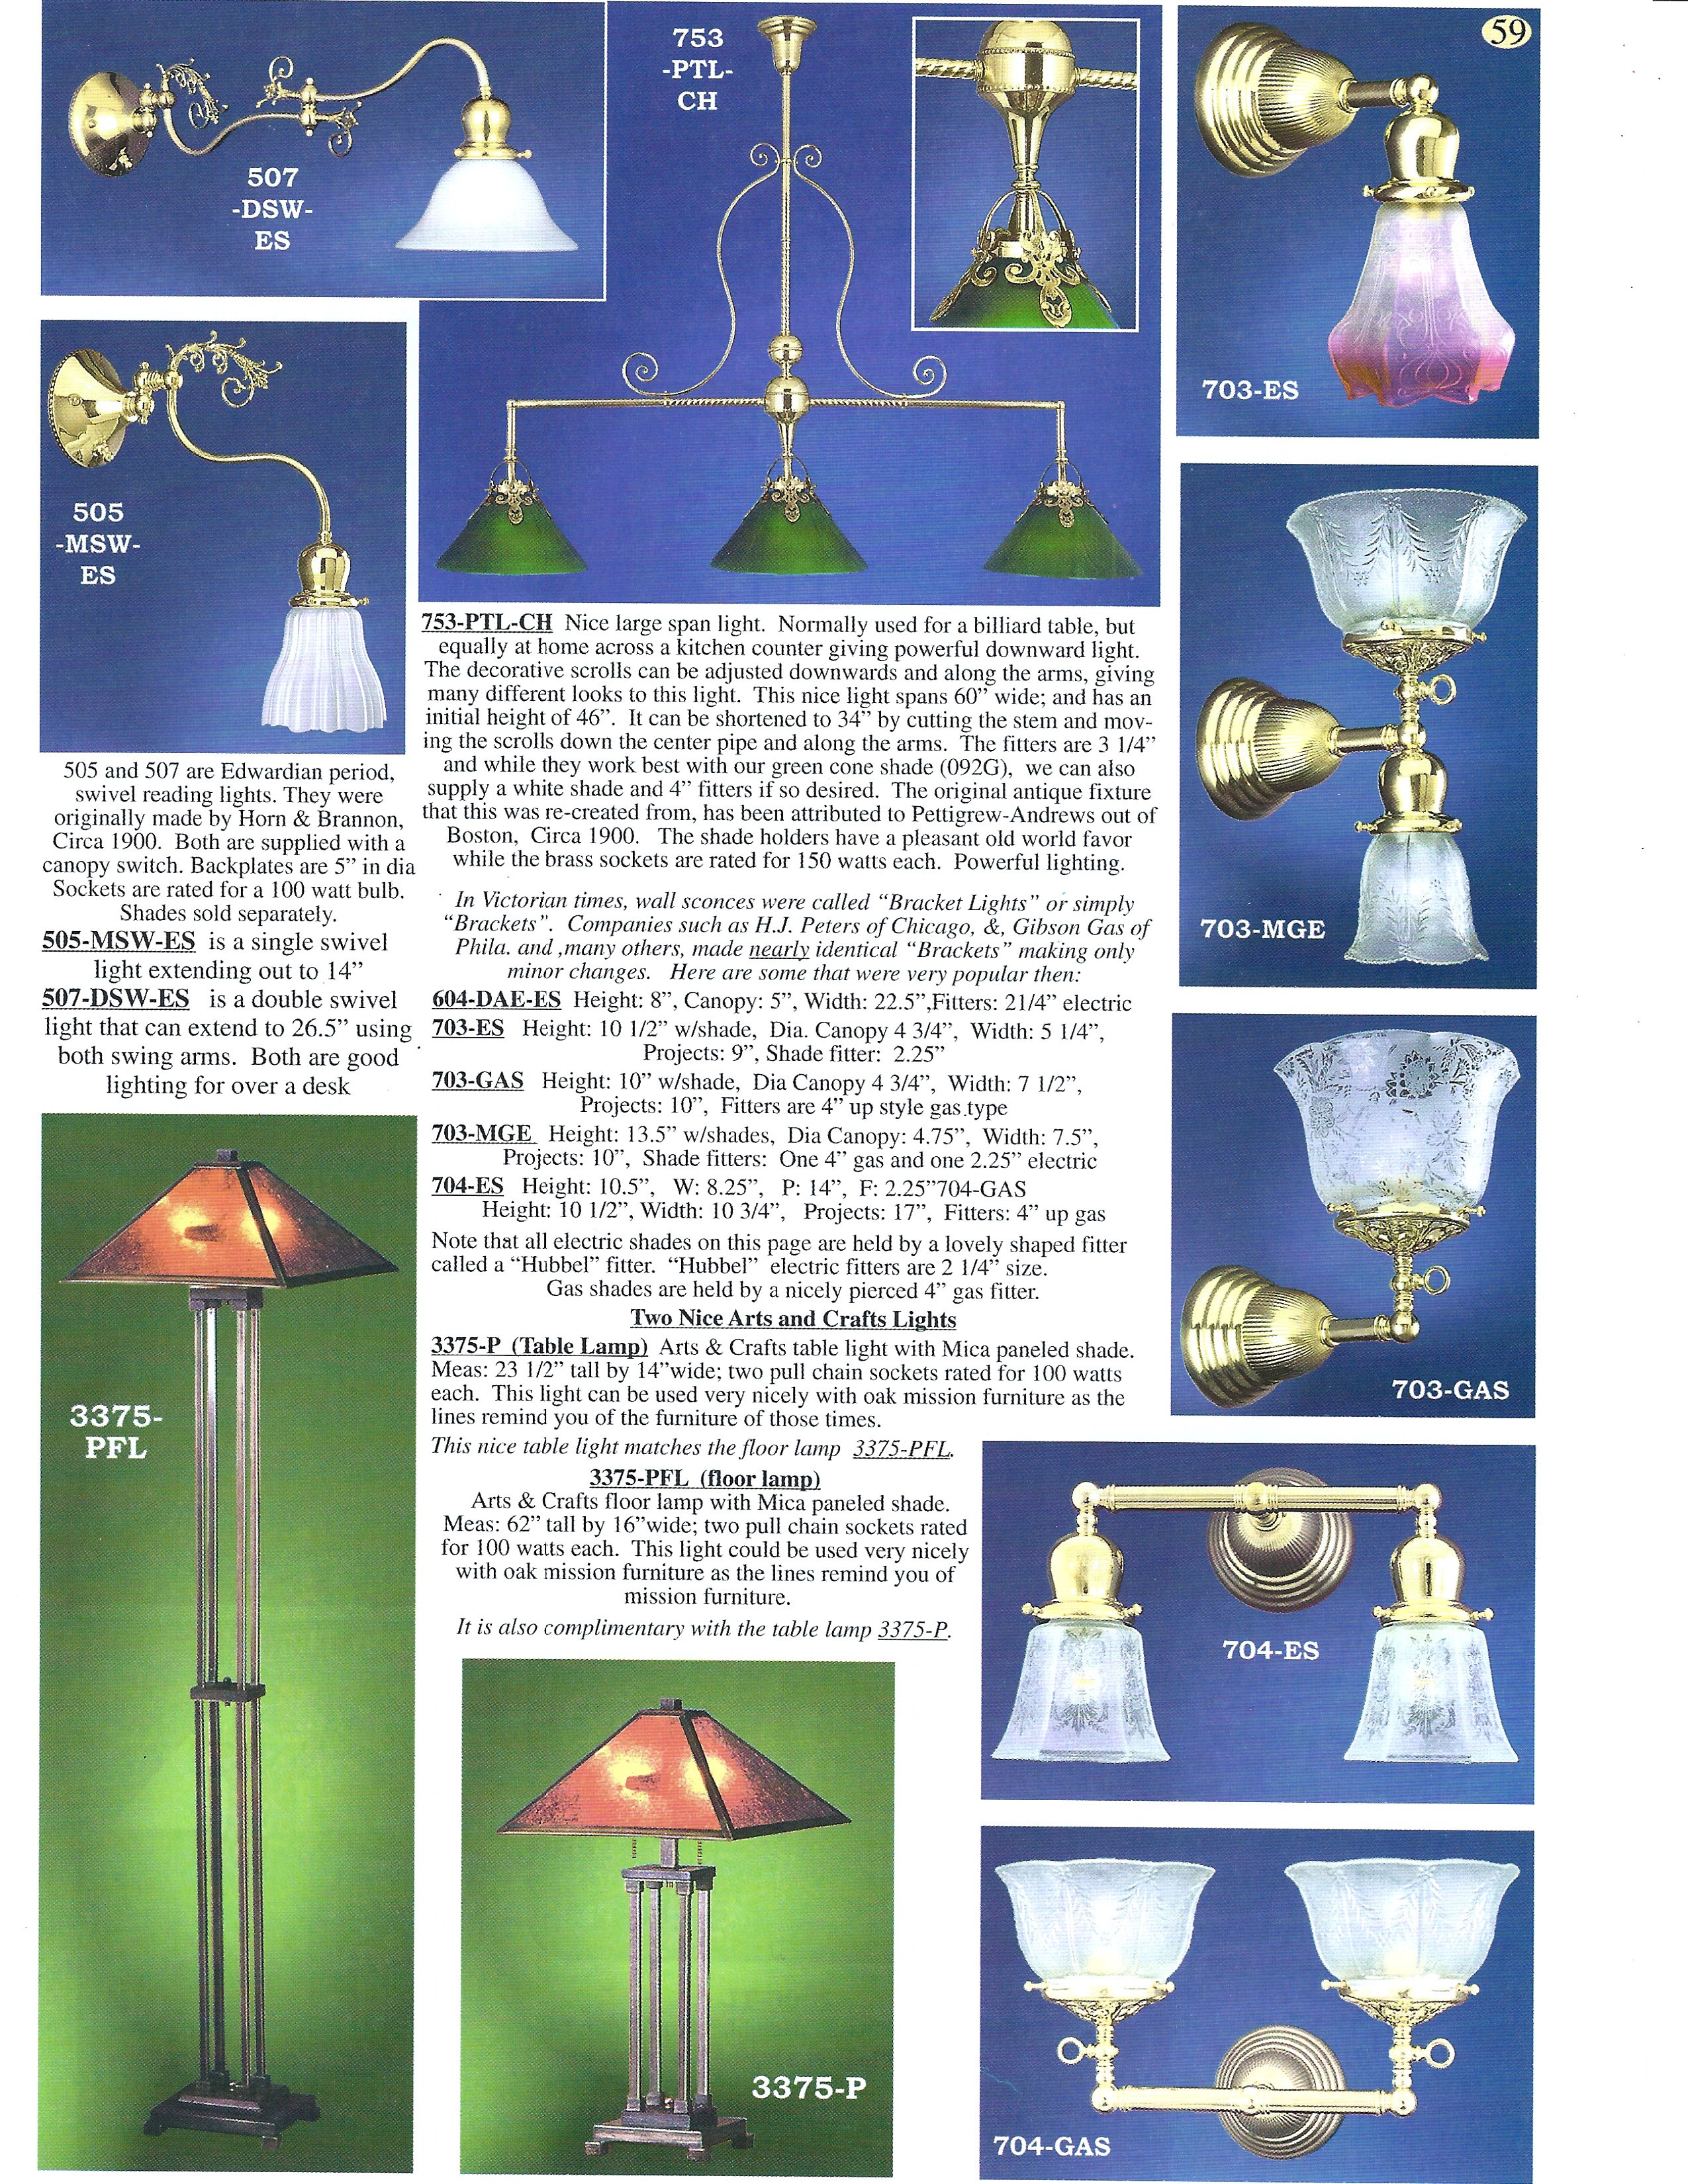 Catalog page 85